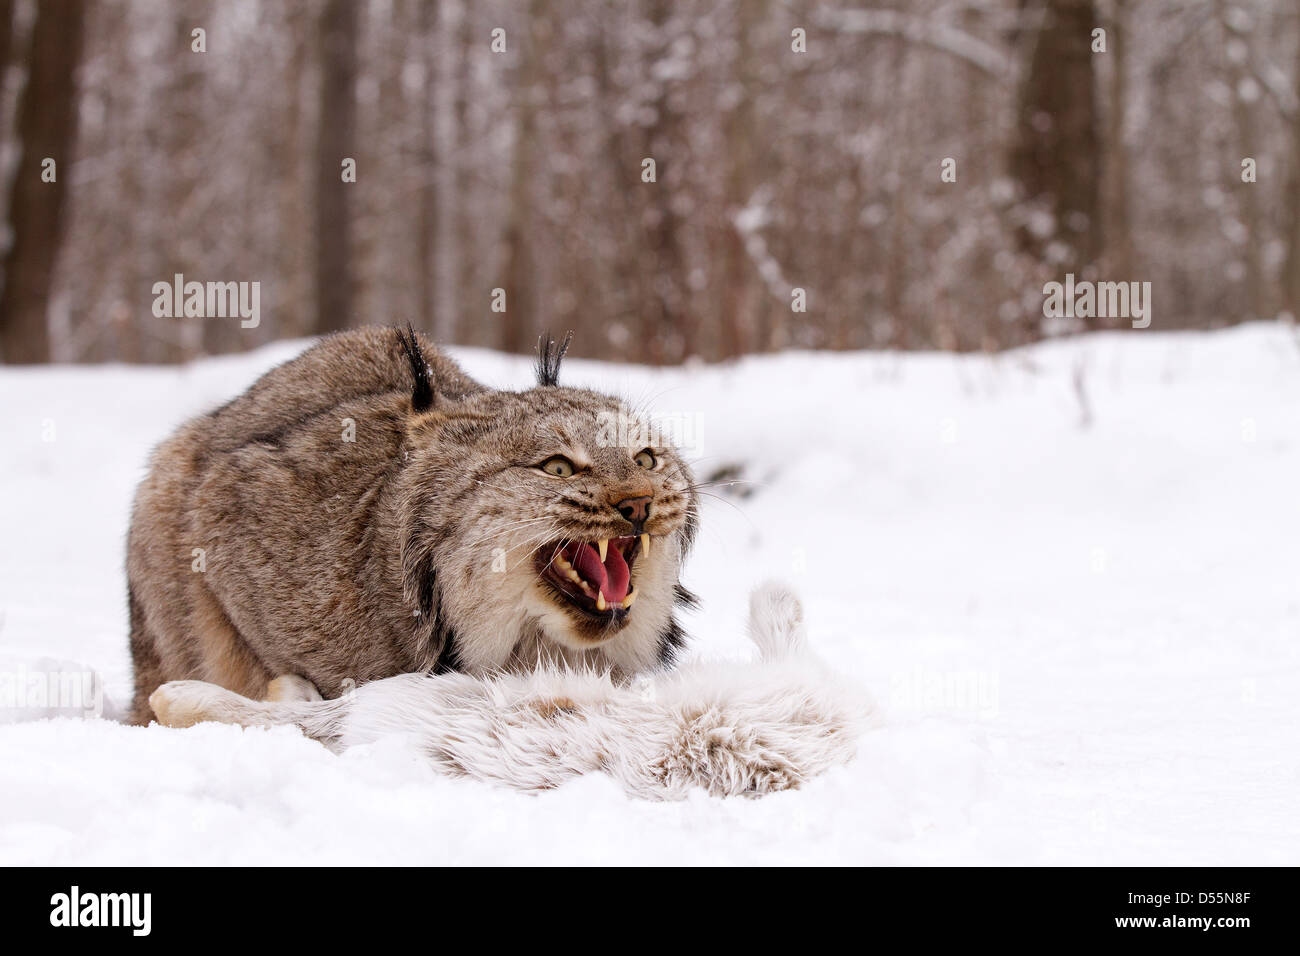 Canada Lynx, Lynx canadansis in snow, with Snowshoe Hare - Stock Image